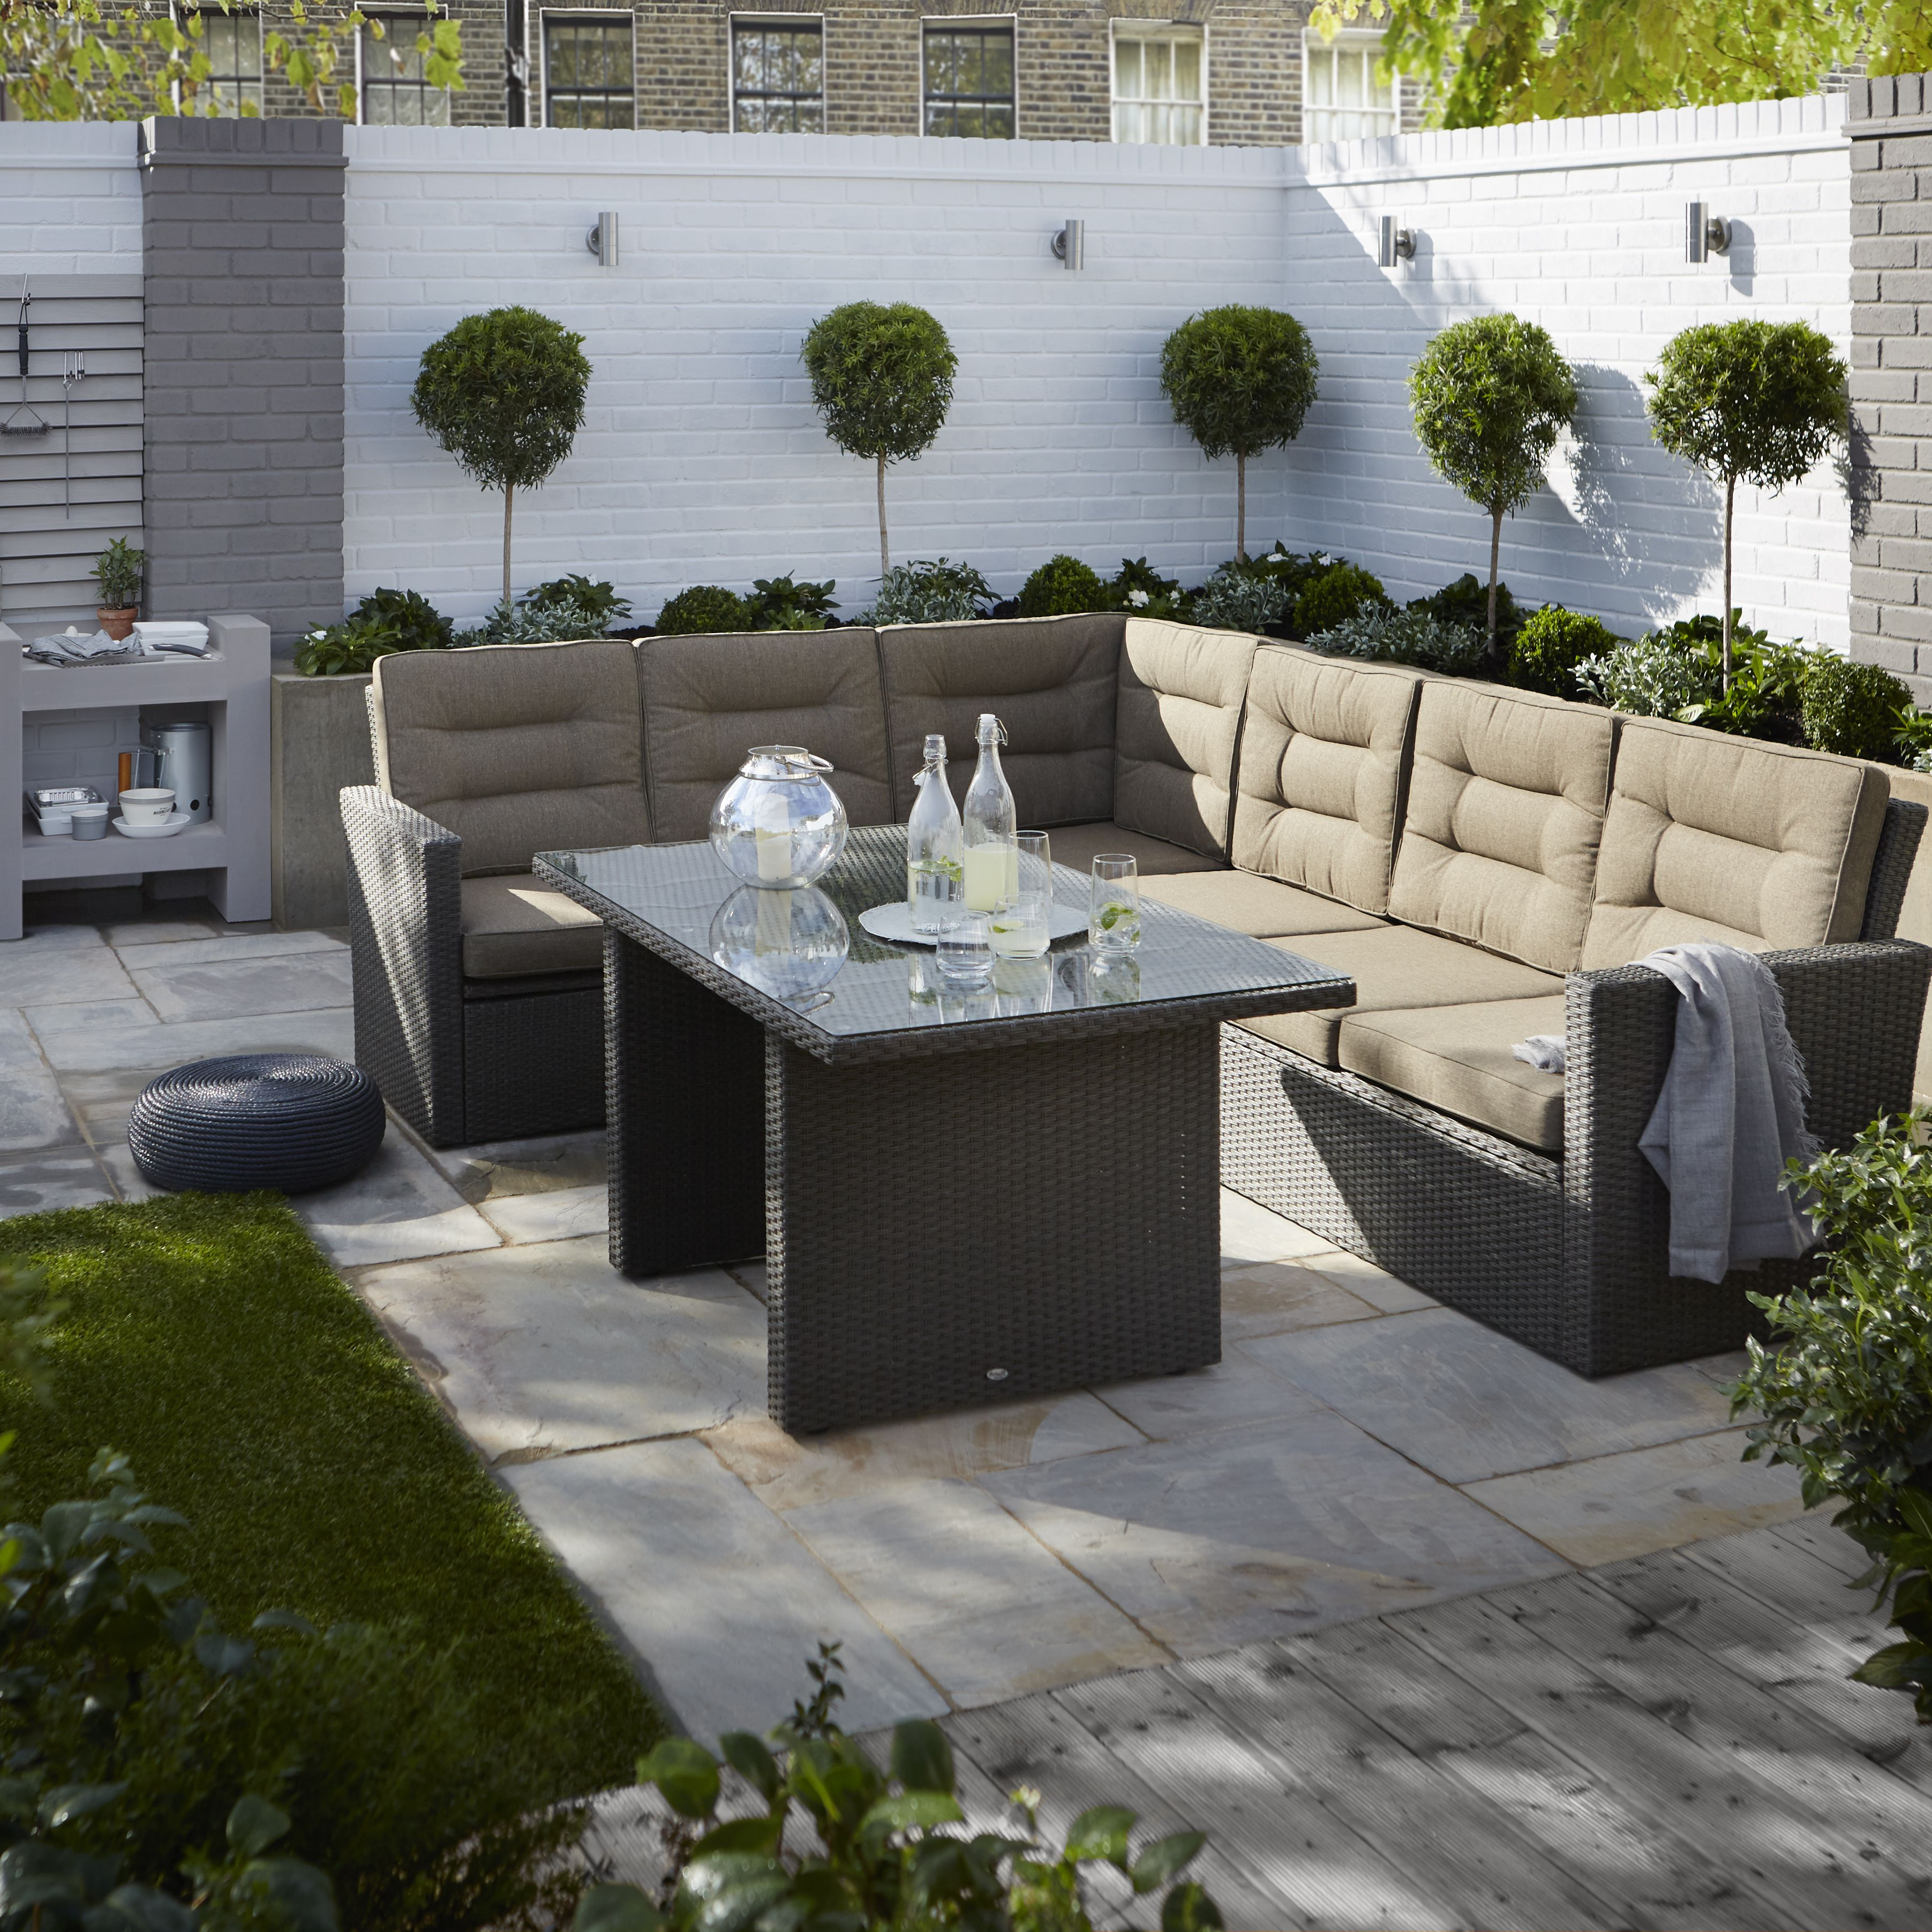 Buyers guide to garden furniture Help Ideas DIY at BQ